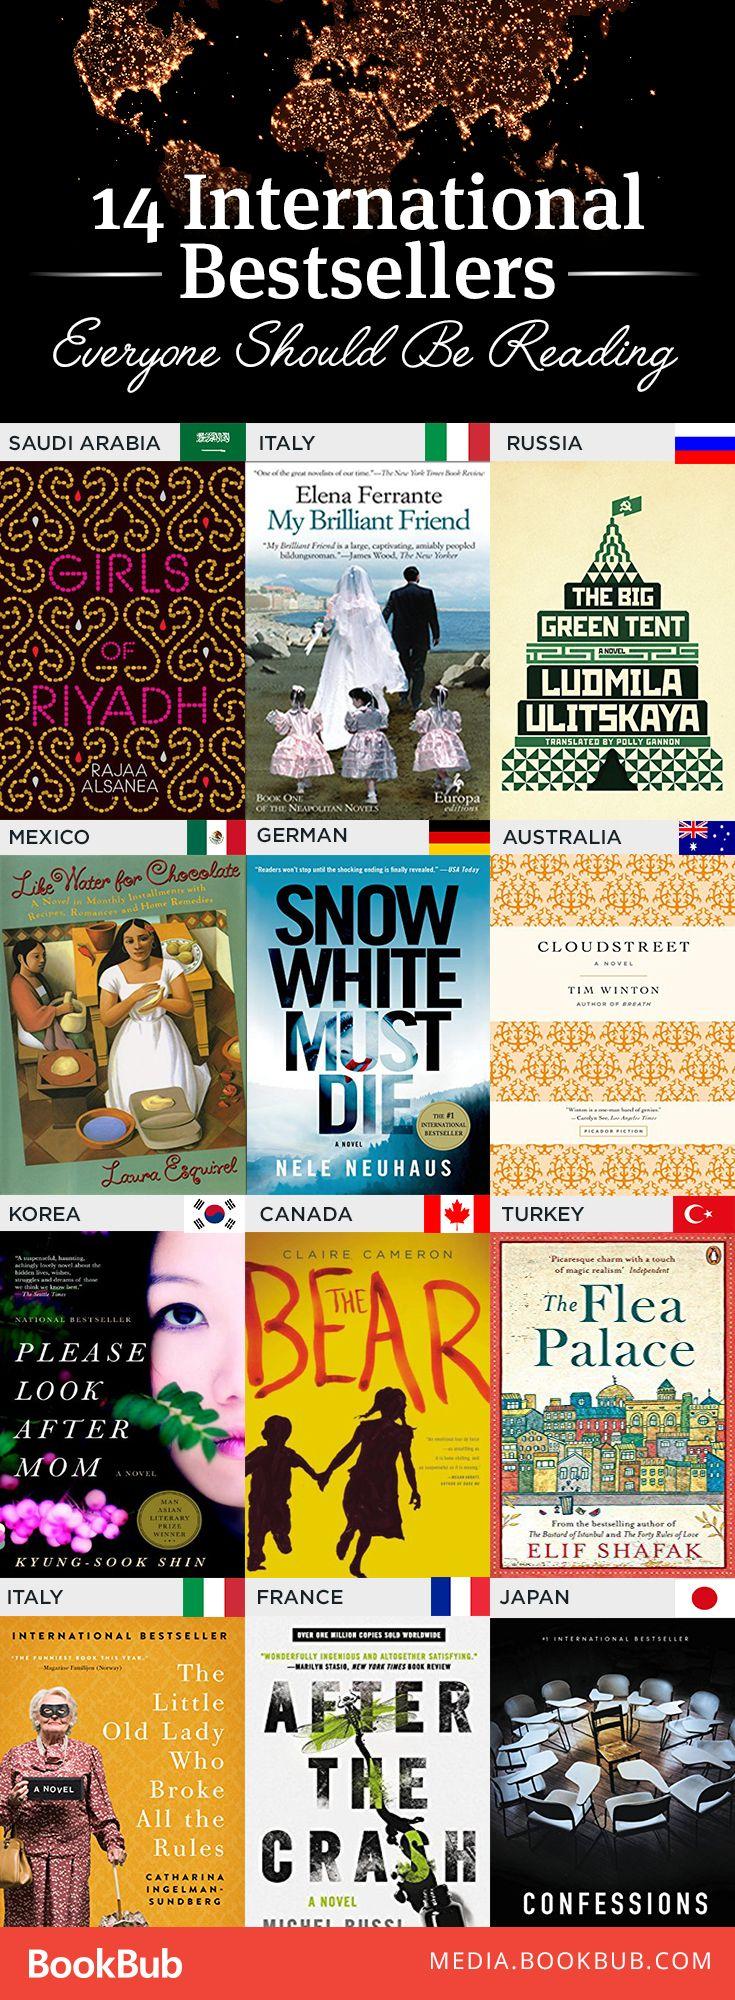 14 International Bestsellers You May Not Have Read, But Should